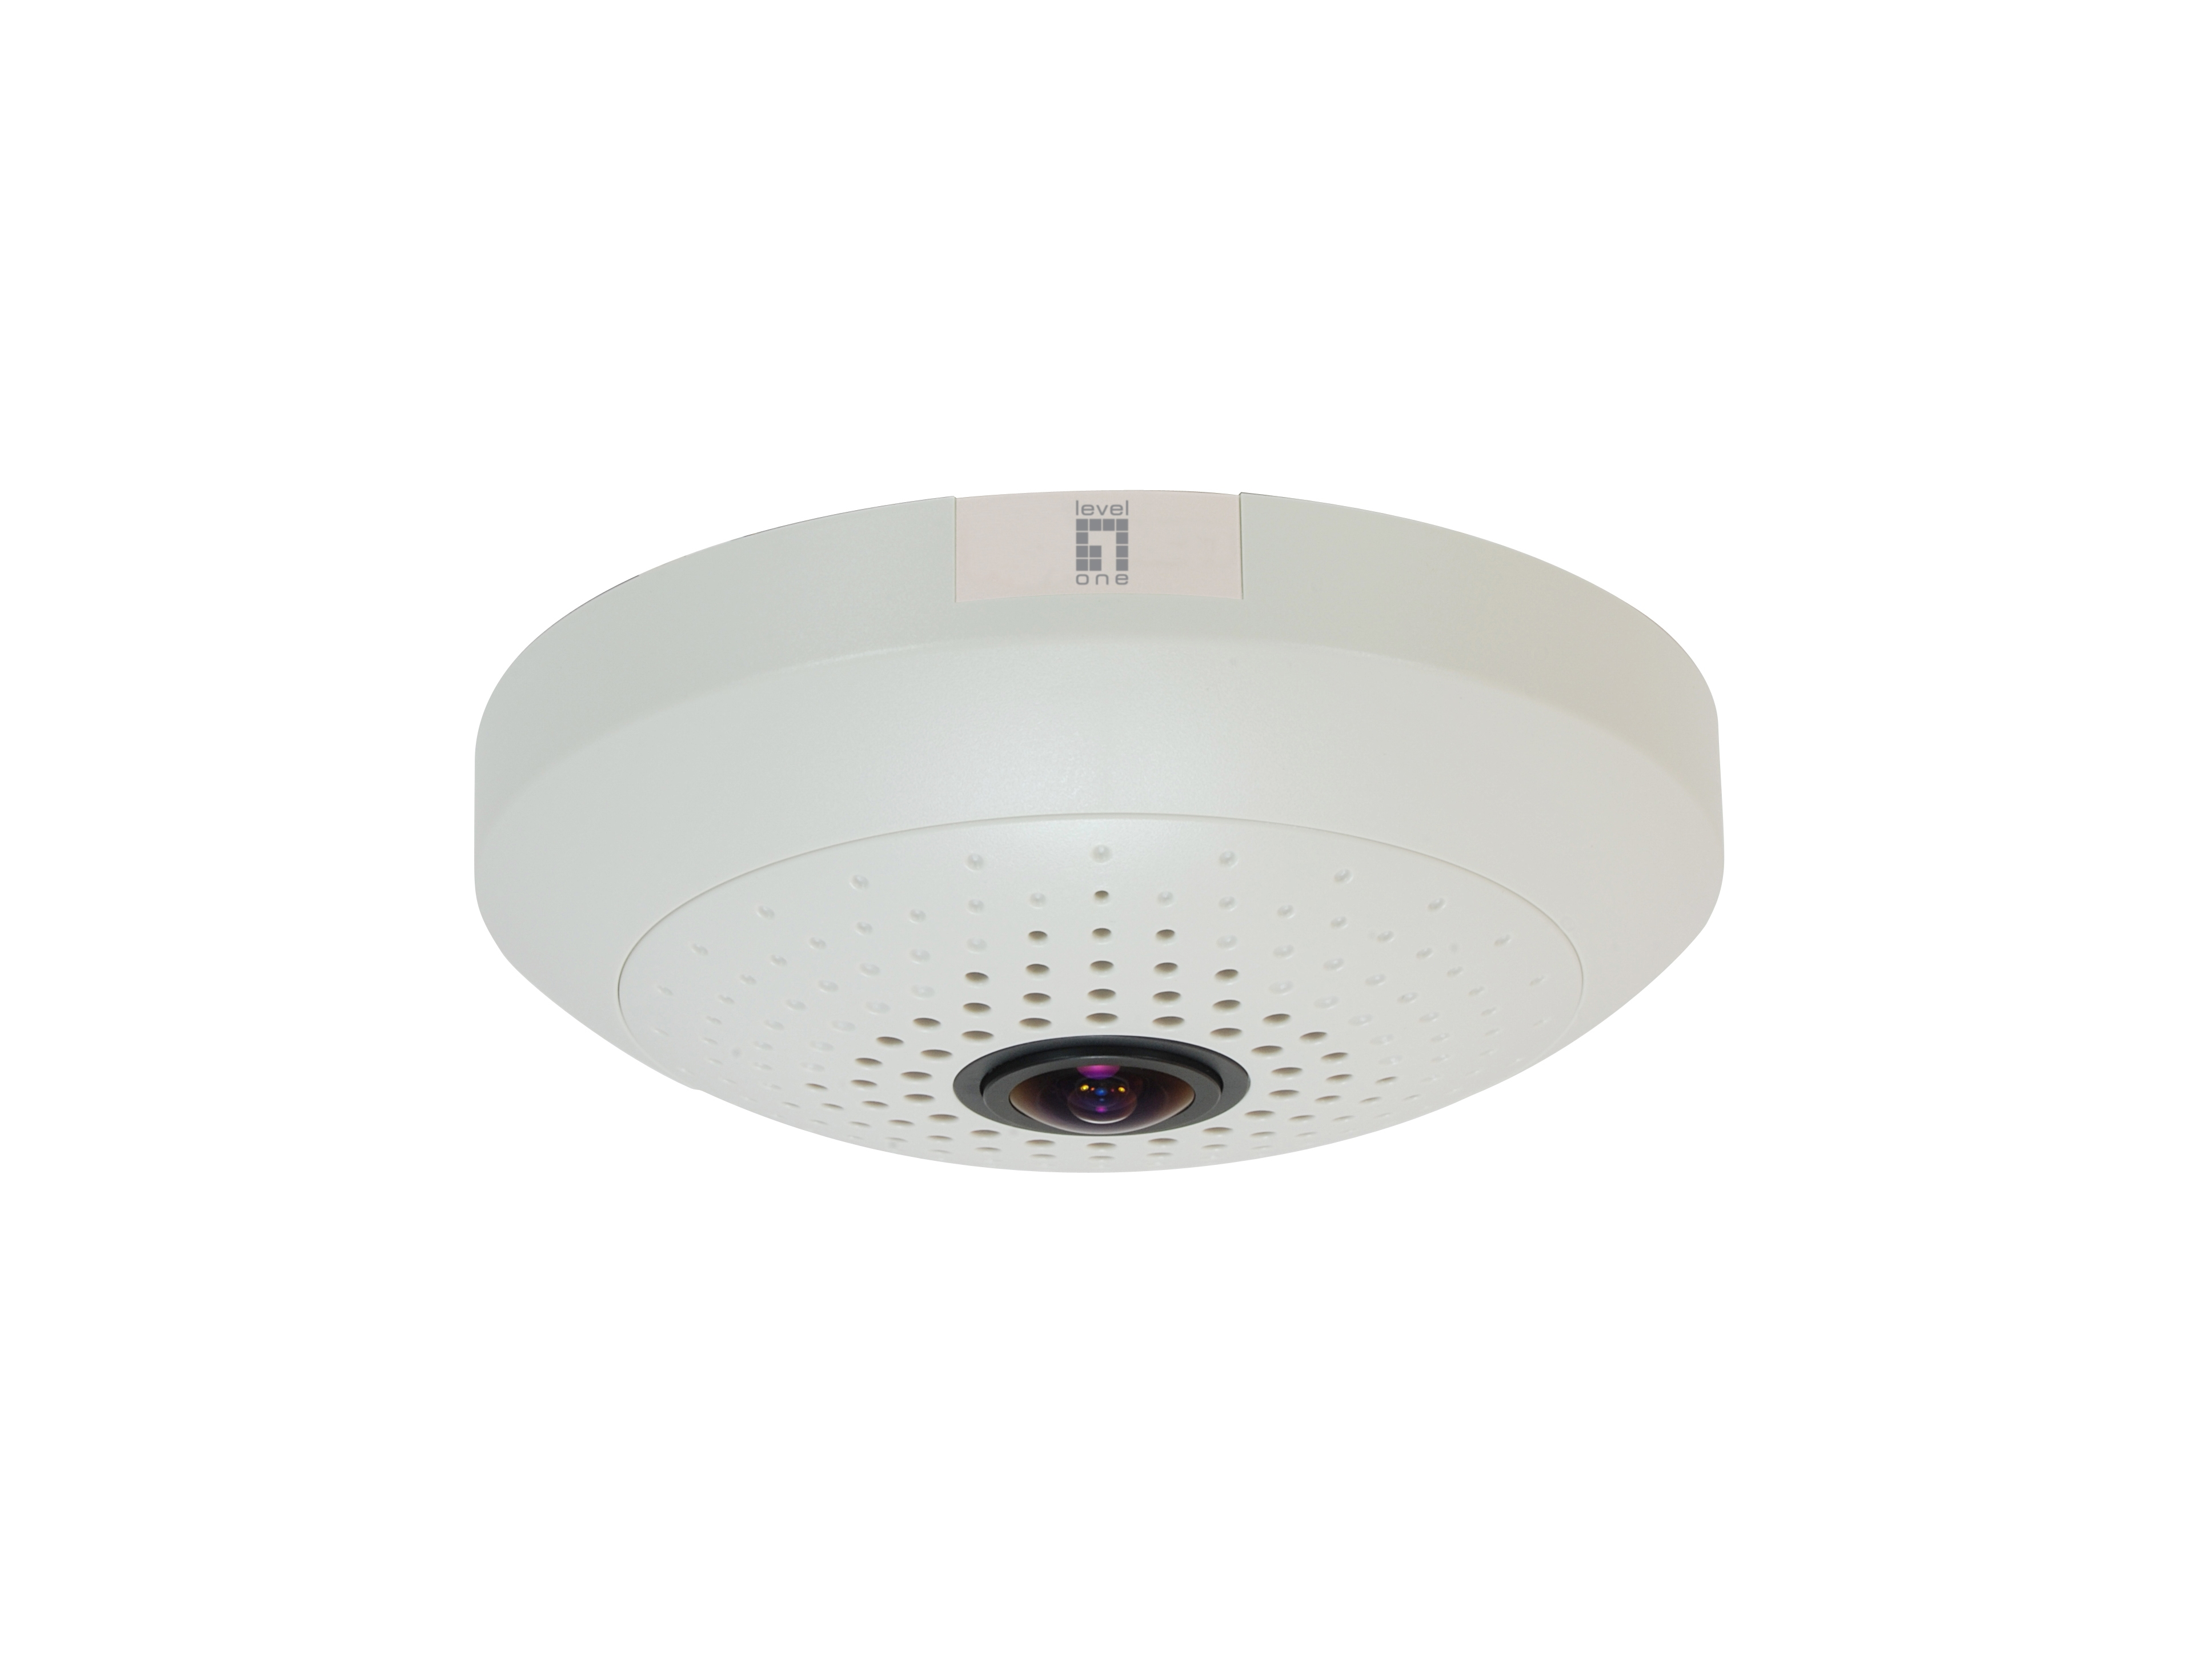 LevelOne Panoramic Dome Network Camera - 10-Megapixel - PoE 802.3af - Day & Night - WDR